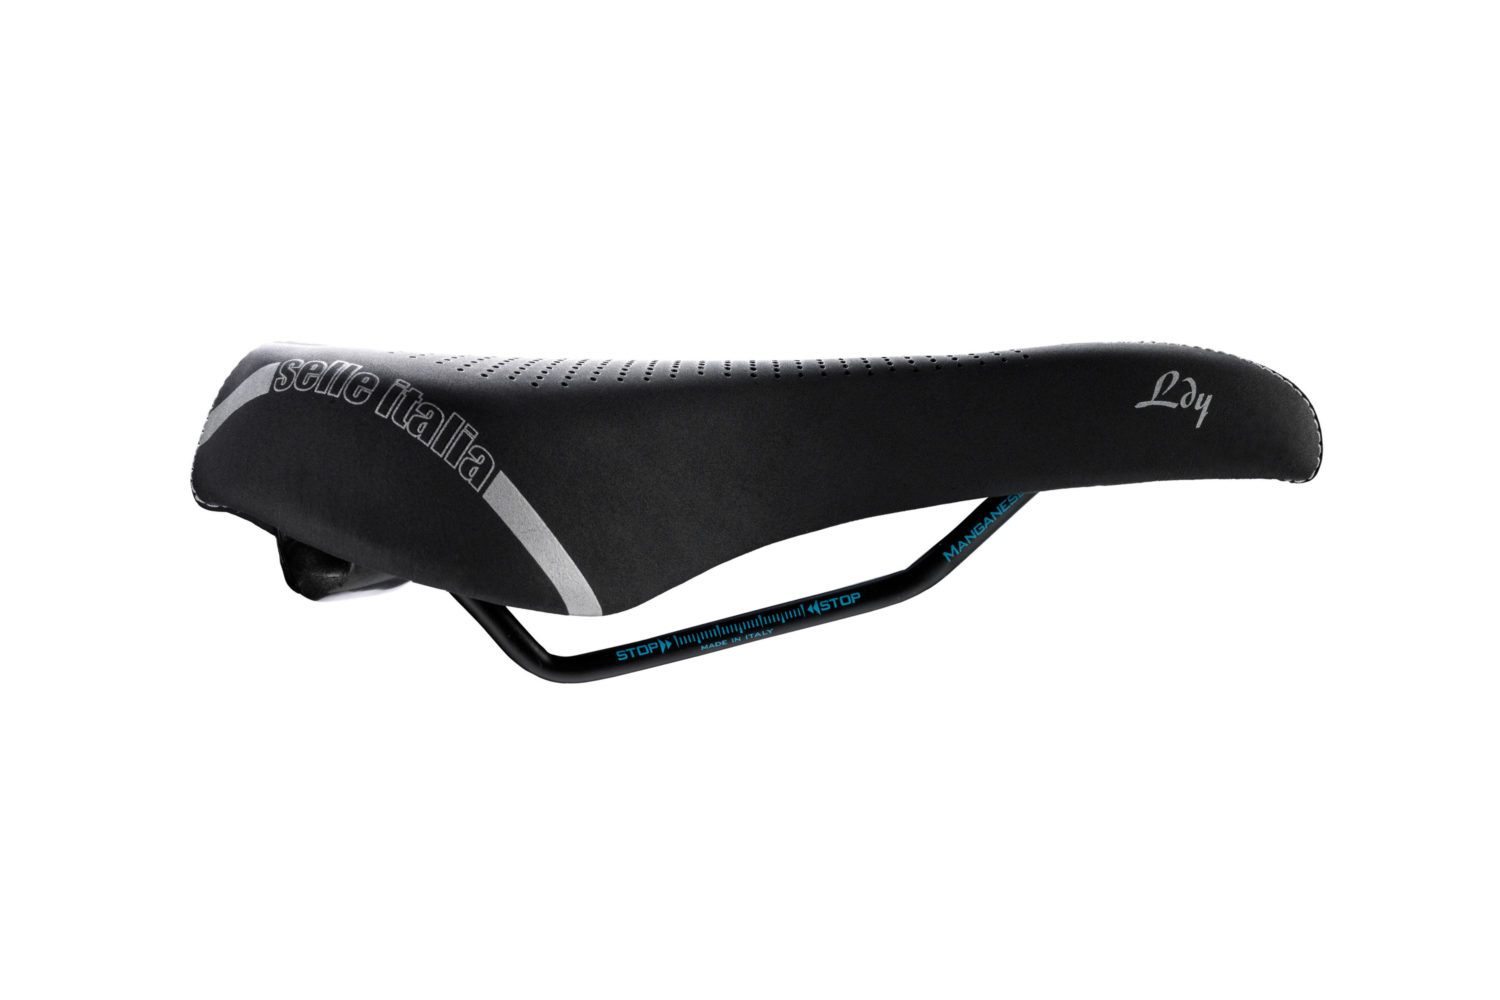 SJEDALO SELLE ITALIA LADY GEL FLOW L E-BIKE MN AM